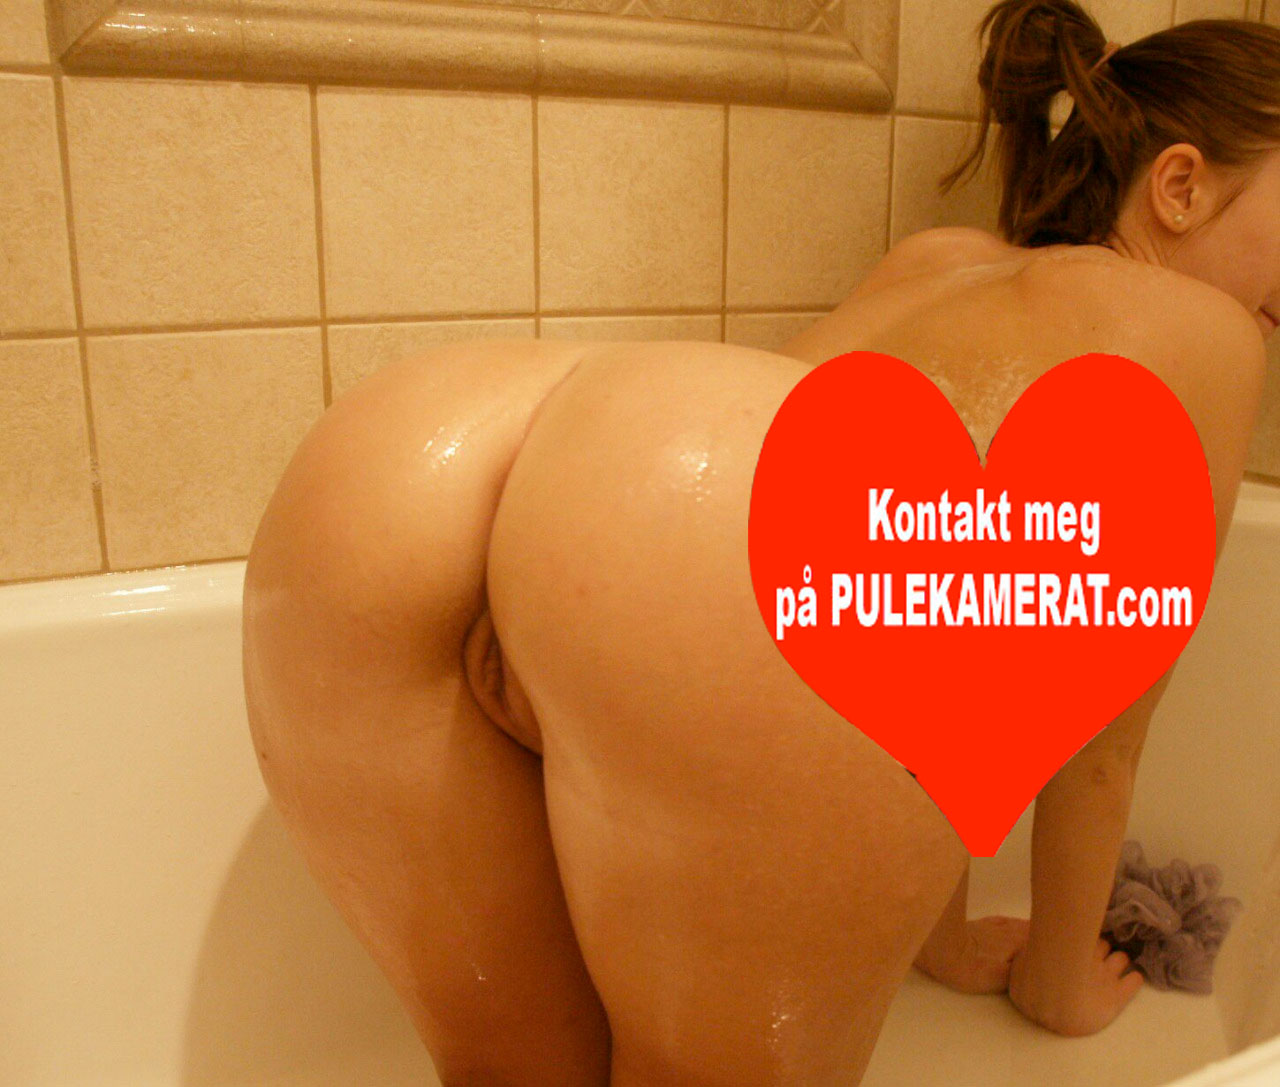 filippinske jenter escort service de